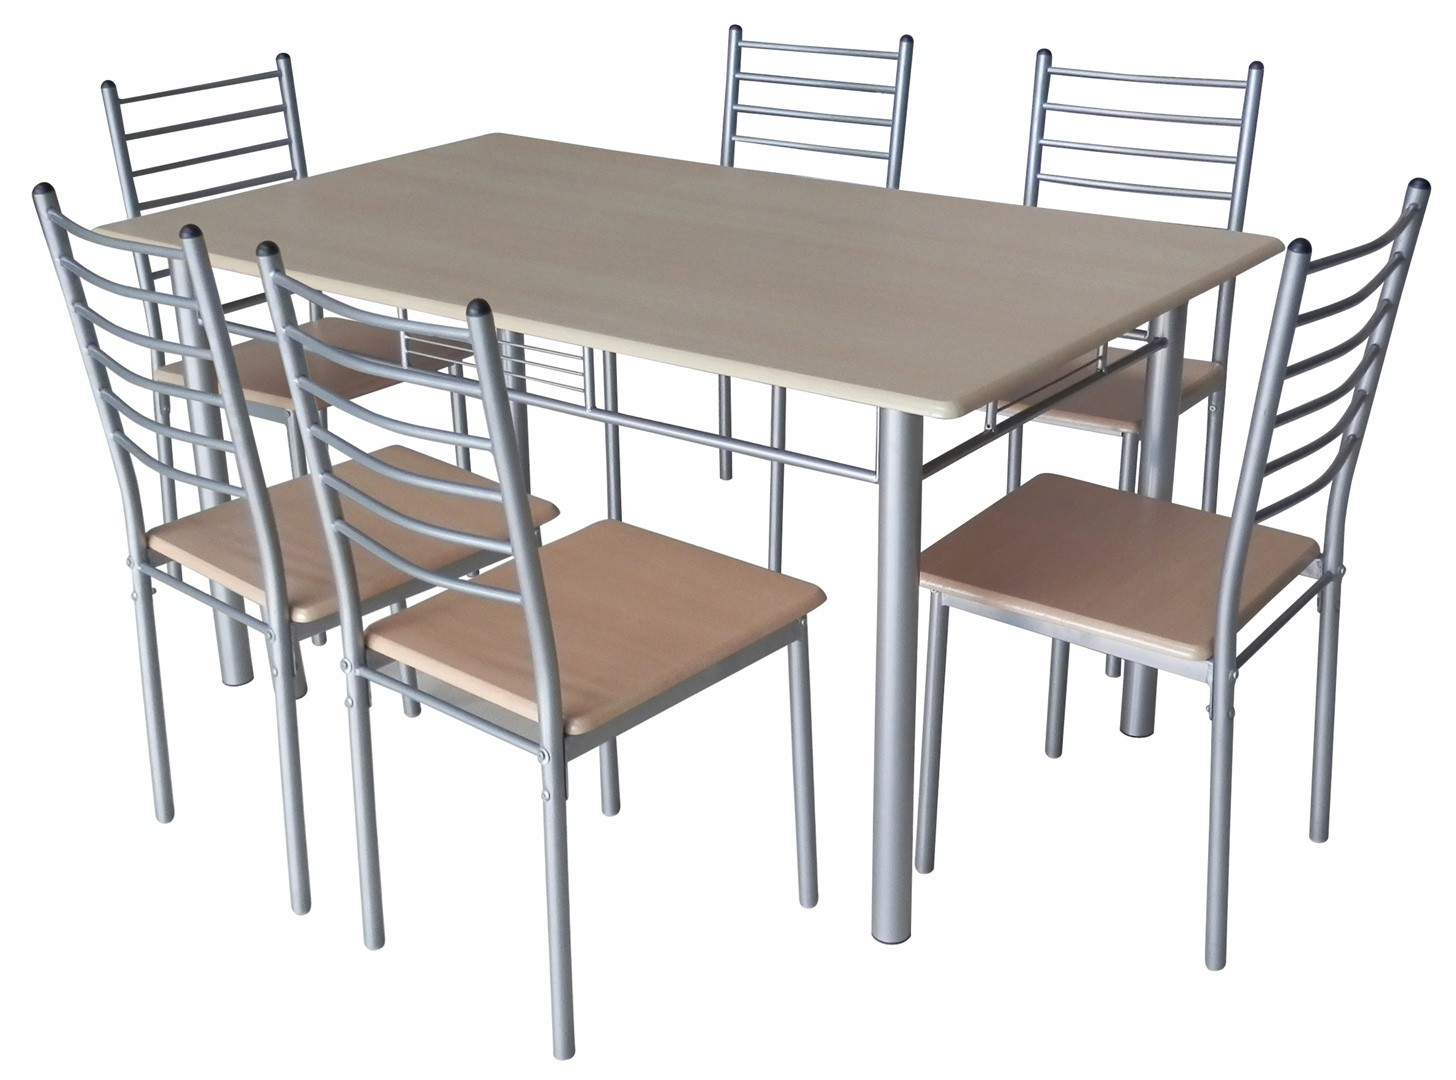 Ensemble table et chaises de cuisine but chaise id es for Table et chaise de cuisine